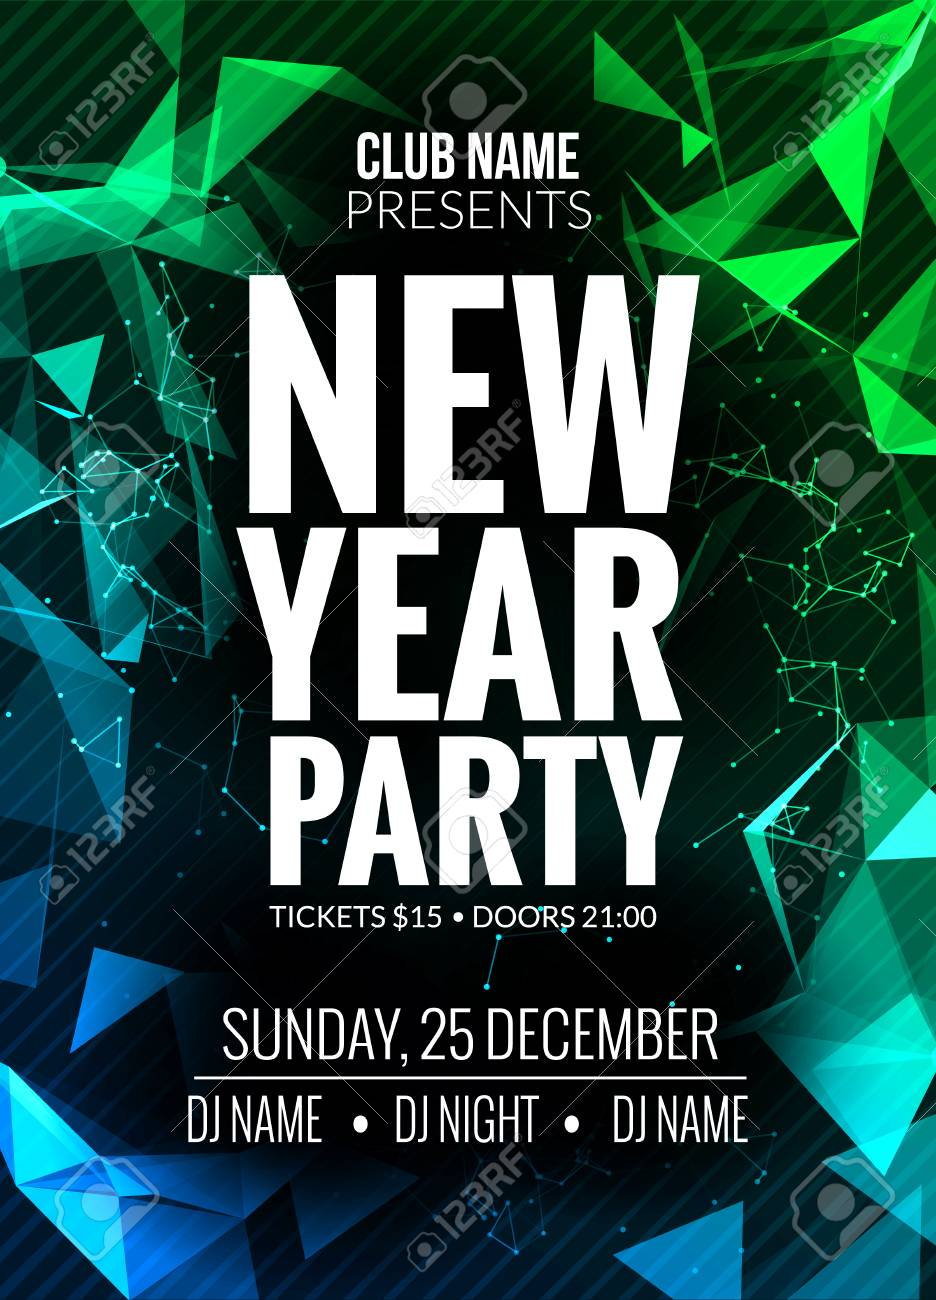 new year party design banner event celebration design template new year festive poster invitation